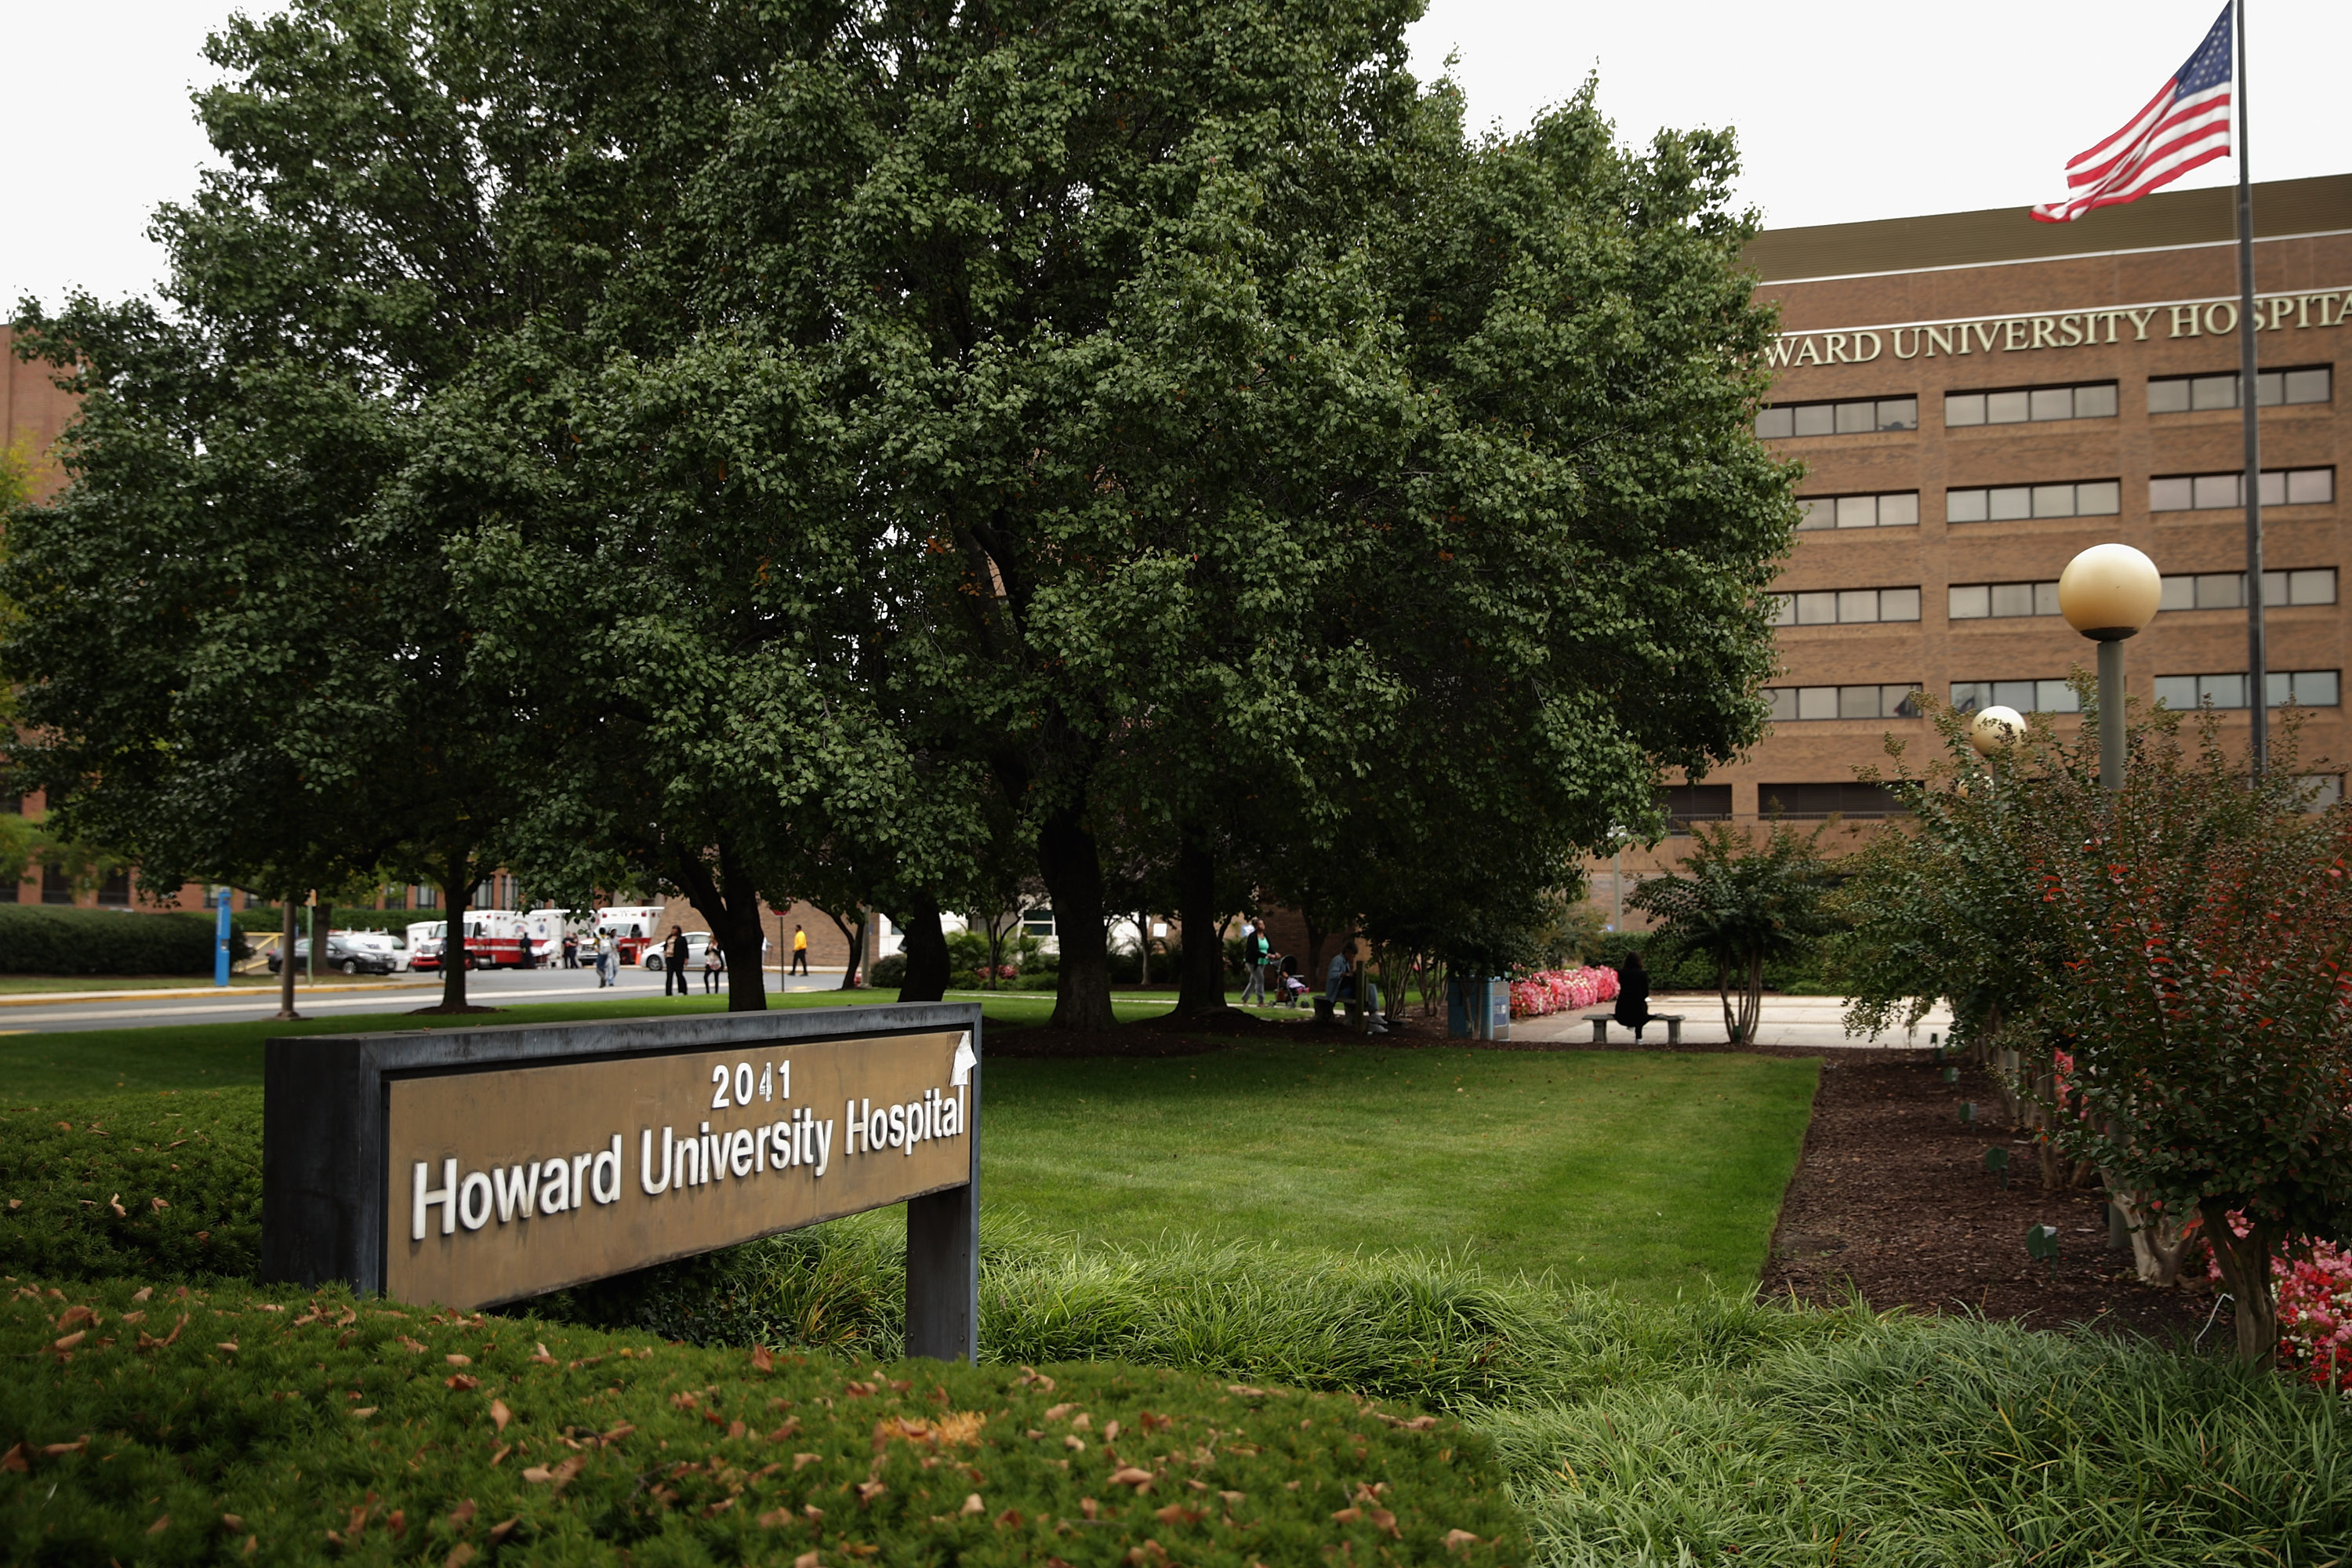 Howard University Hospital has admitted a patient with Ebola-like symptoms according to a hospital spokesperson October 3, 2014 in Washington, D.C.